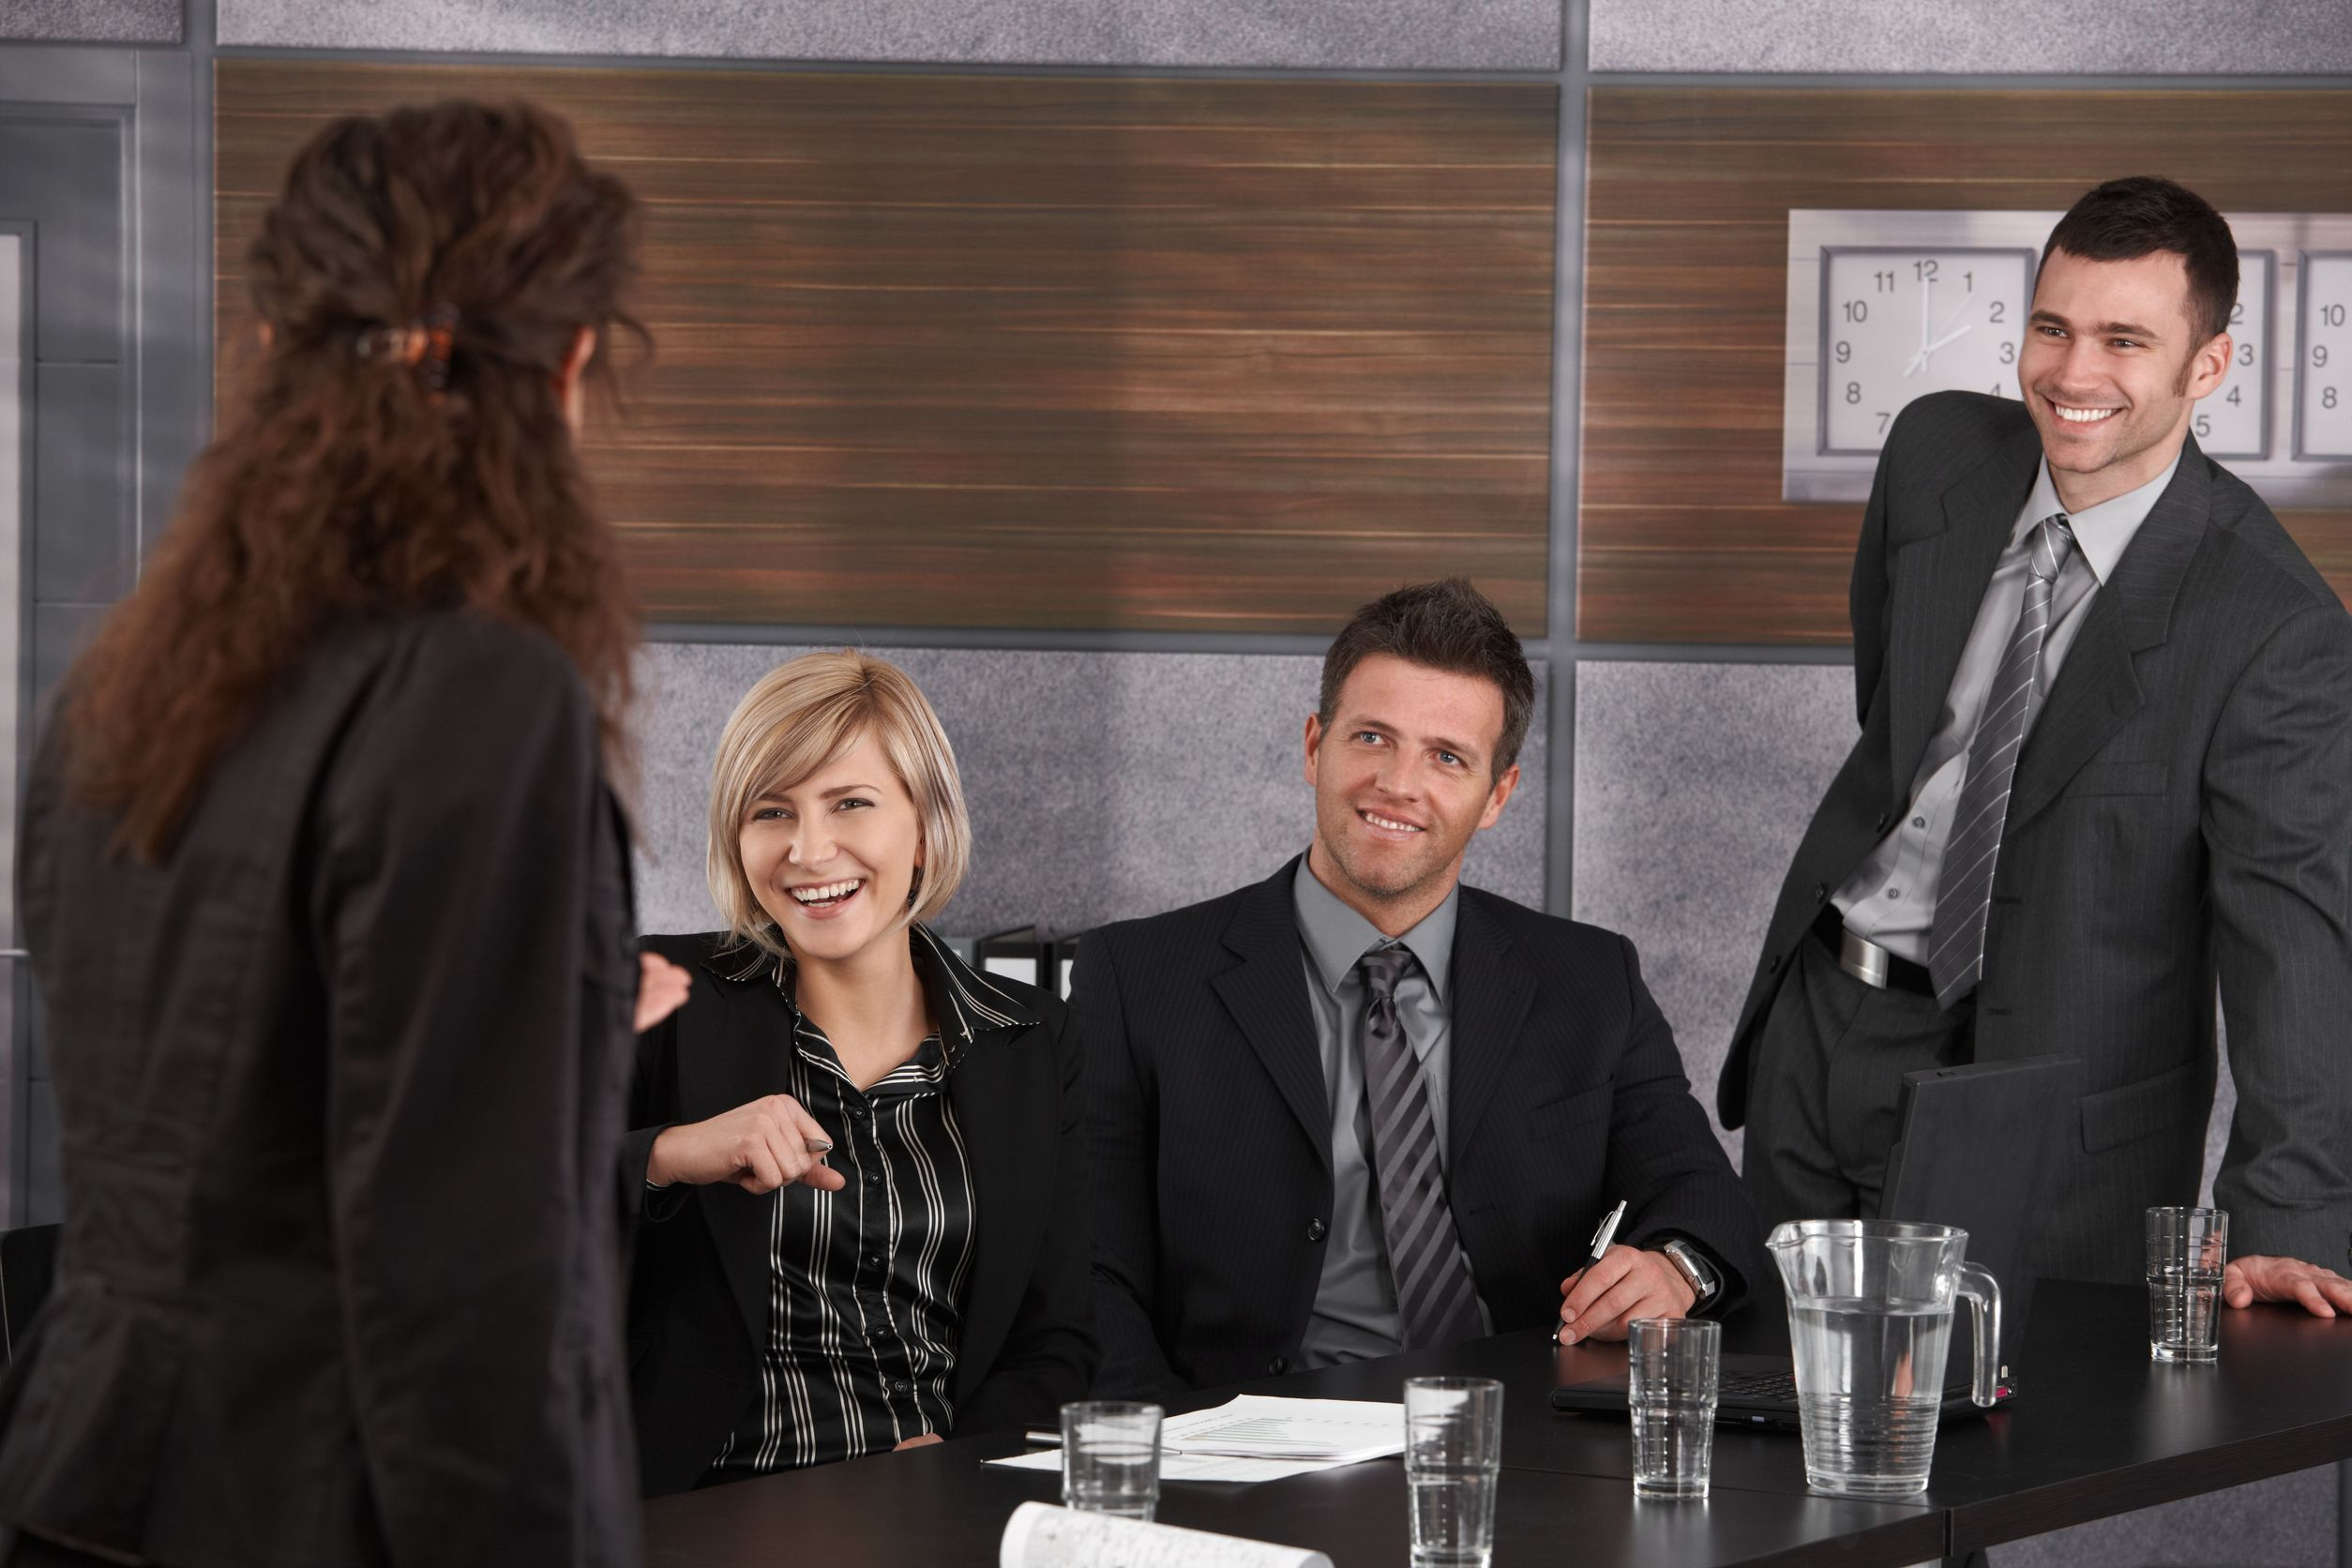 Image result for humor in a workplace Helps in Decision Making